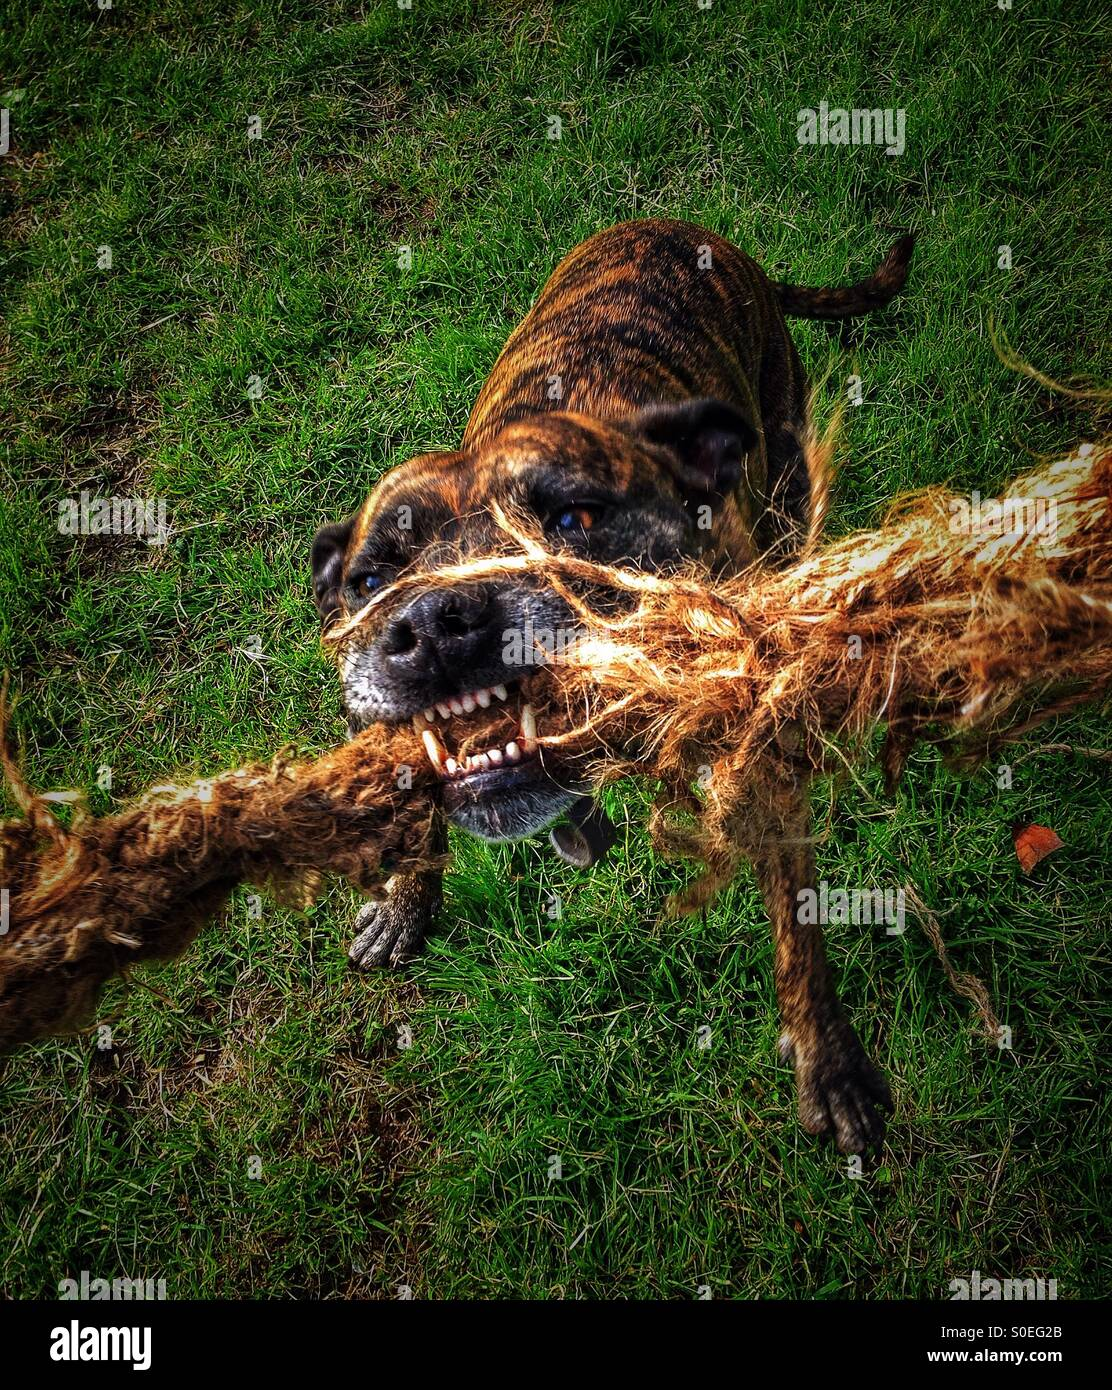 Staffordshire Bull Terrier holding on to a rope - Stock Image